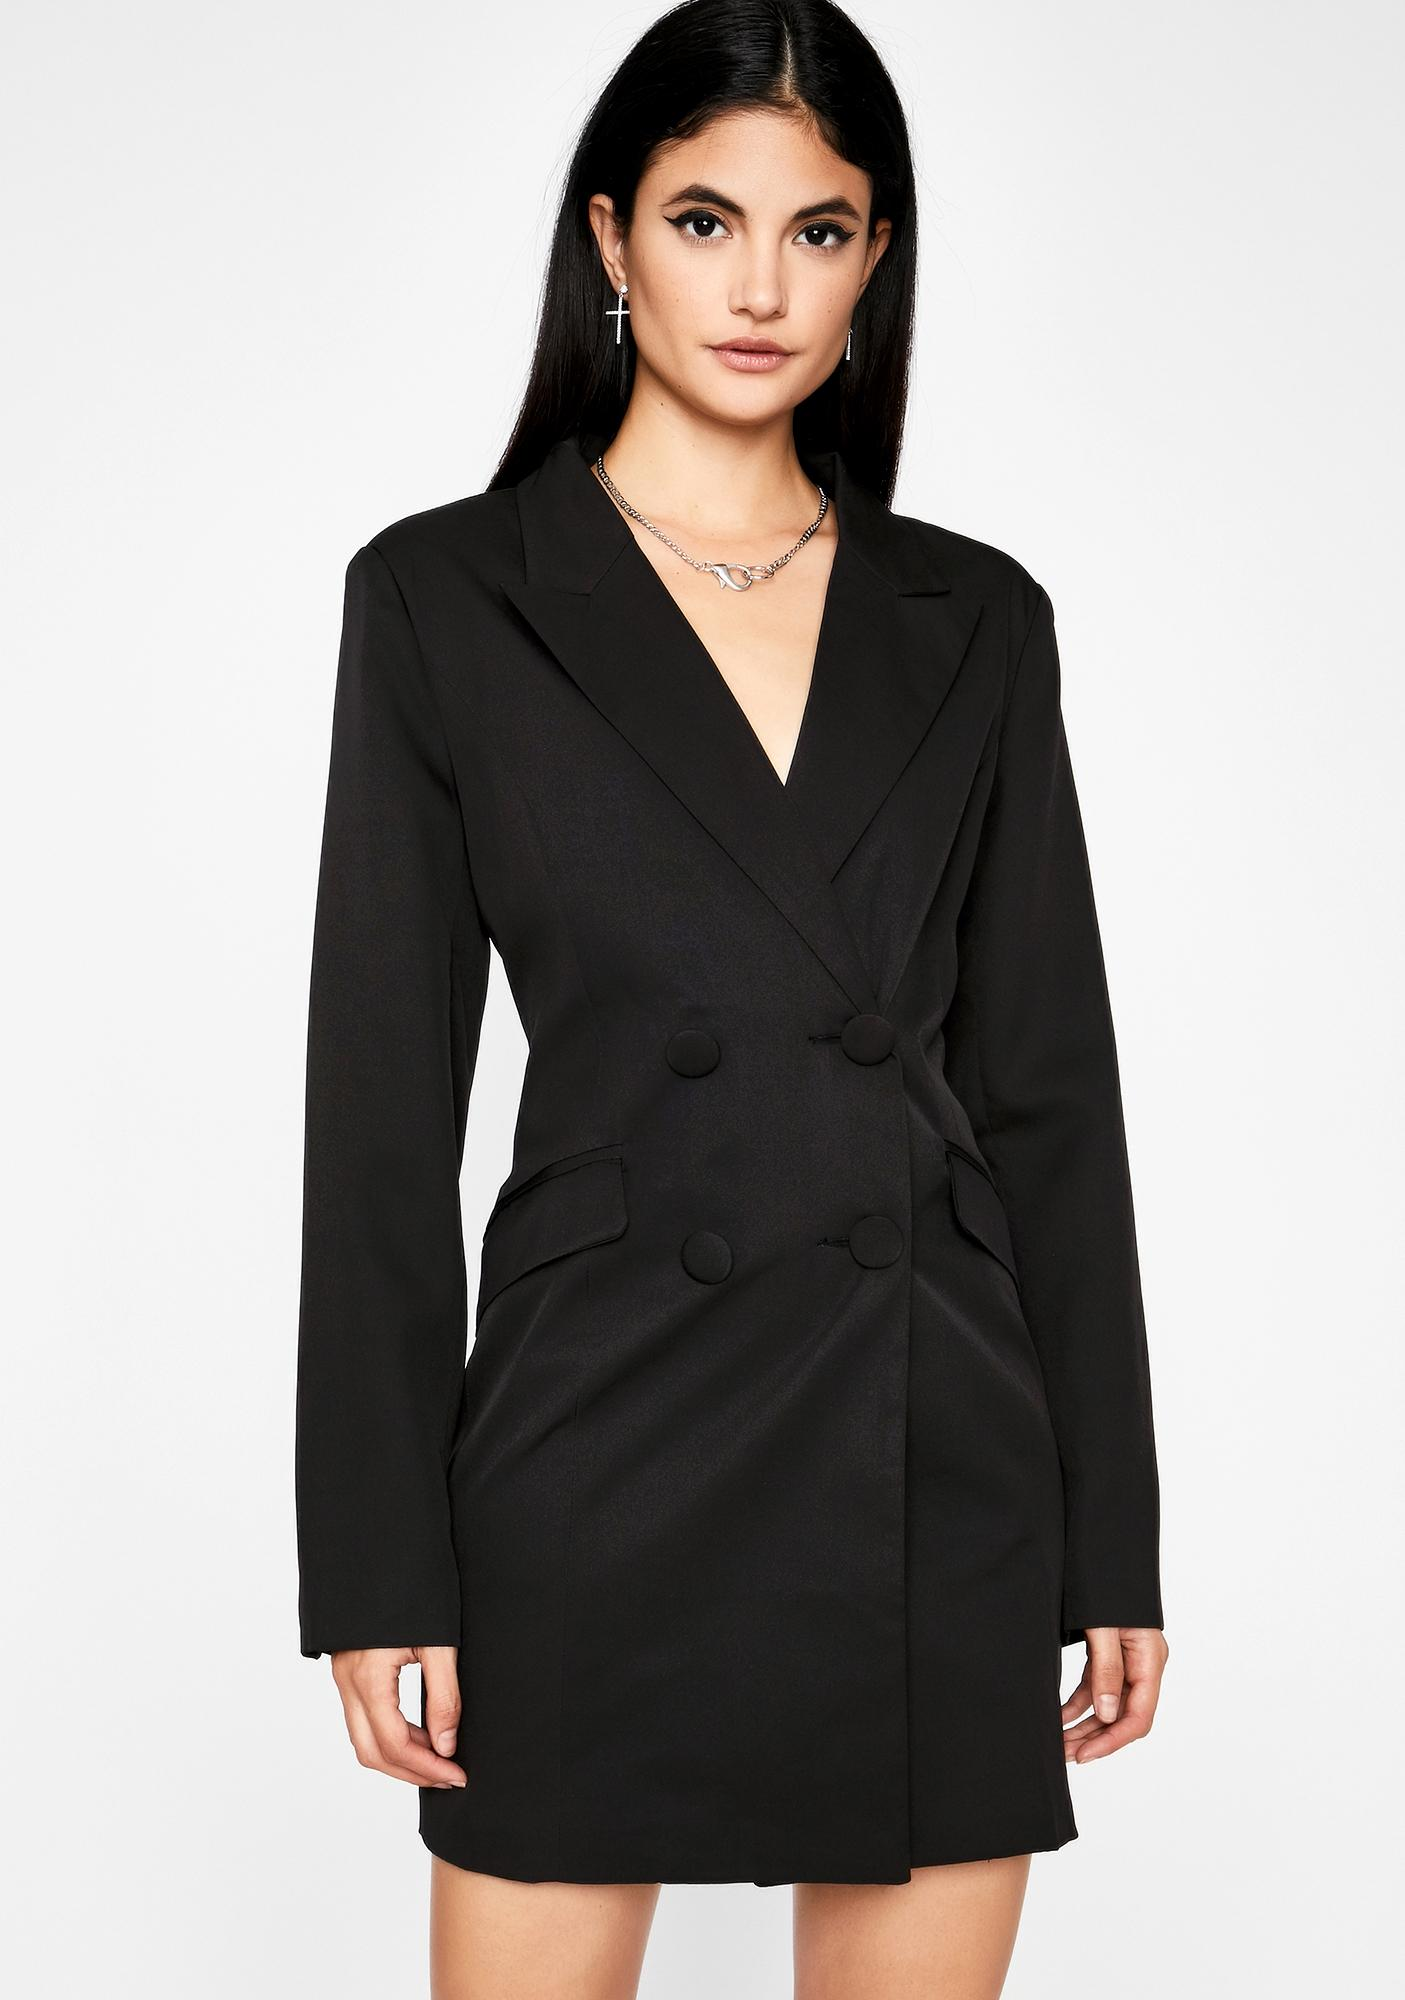 Wicked Higher Up Blazer Dress by